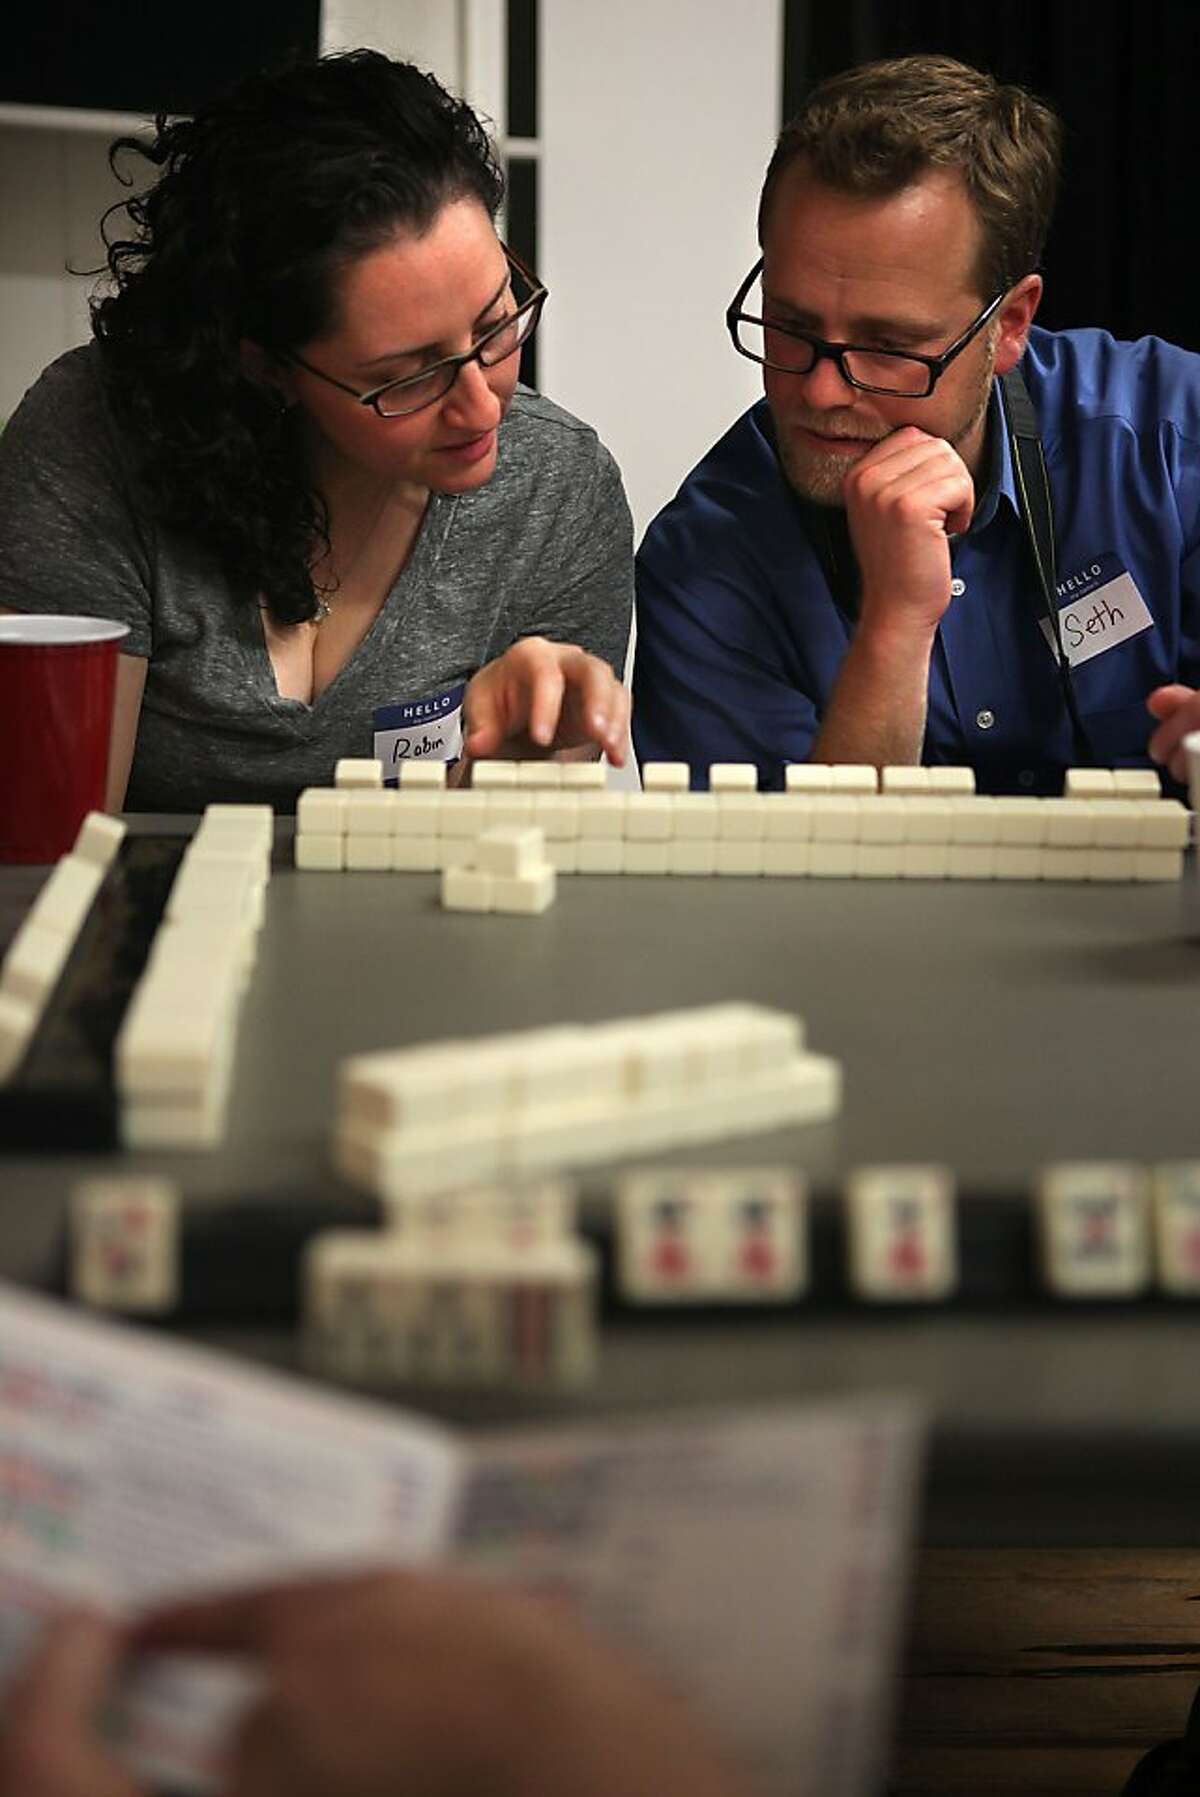 Robin Handwerker (left), and Seth Linden (right) partner up while learning to play the game of Mahjong in a building at Dogpatch in San Francisco, California, on Tuesday, September 27, 2011. Seth just started playing about a week ago.